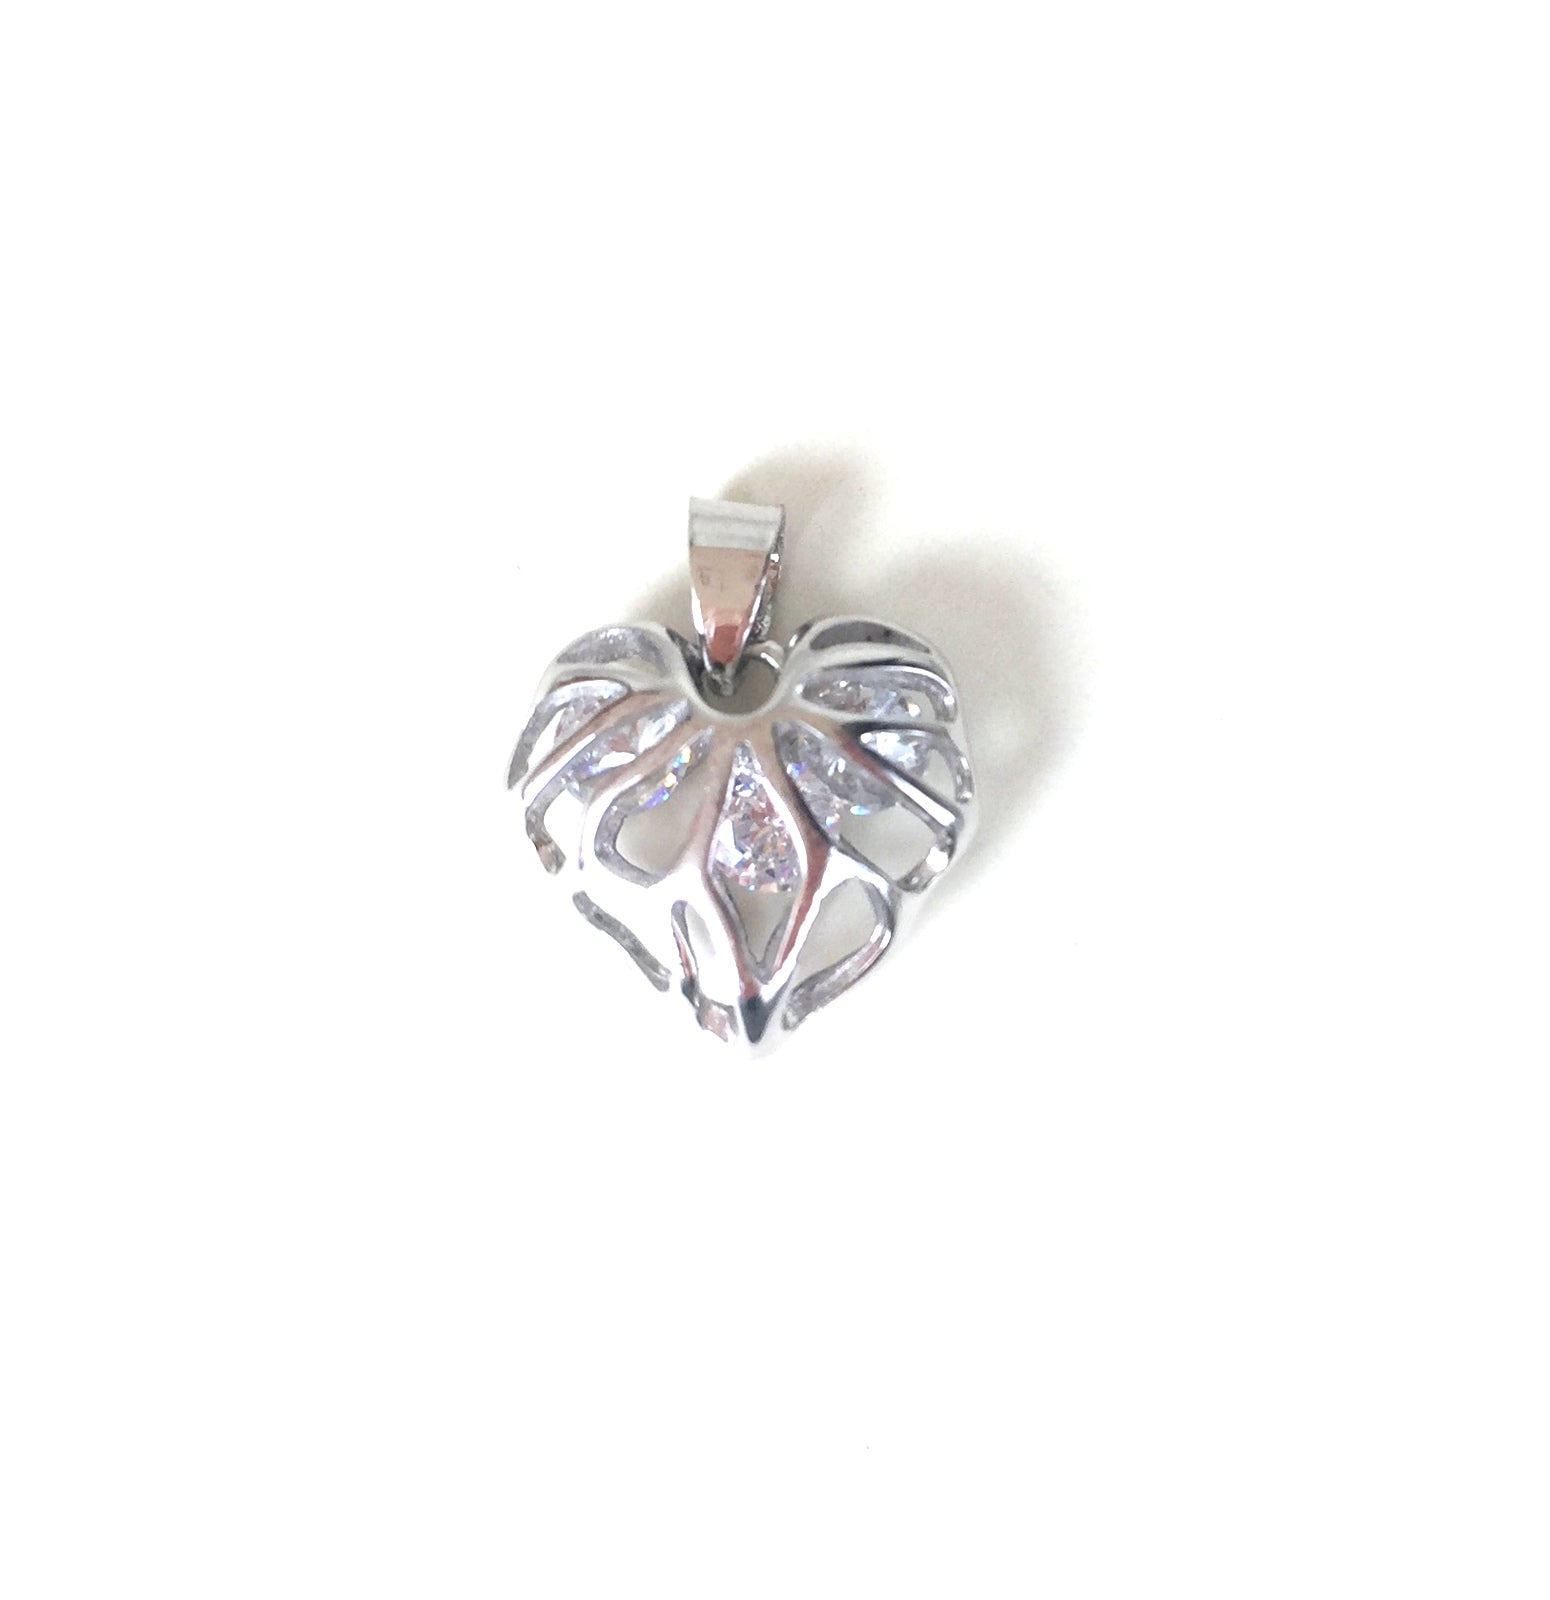 HEART WITH STONE INSIDE STERLING SILVER PENDANT